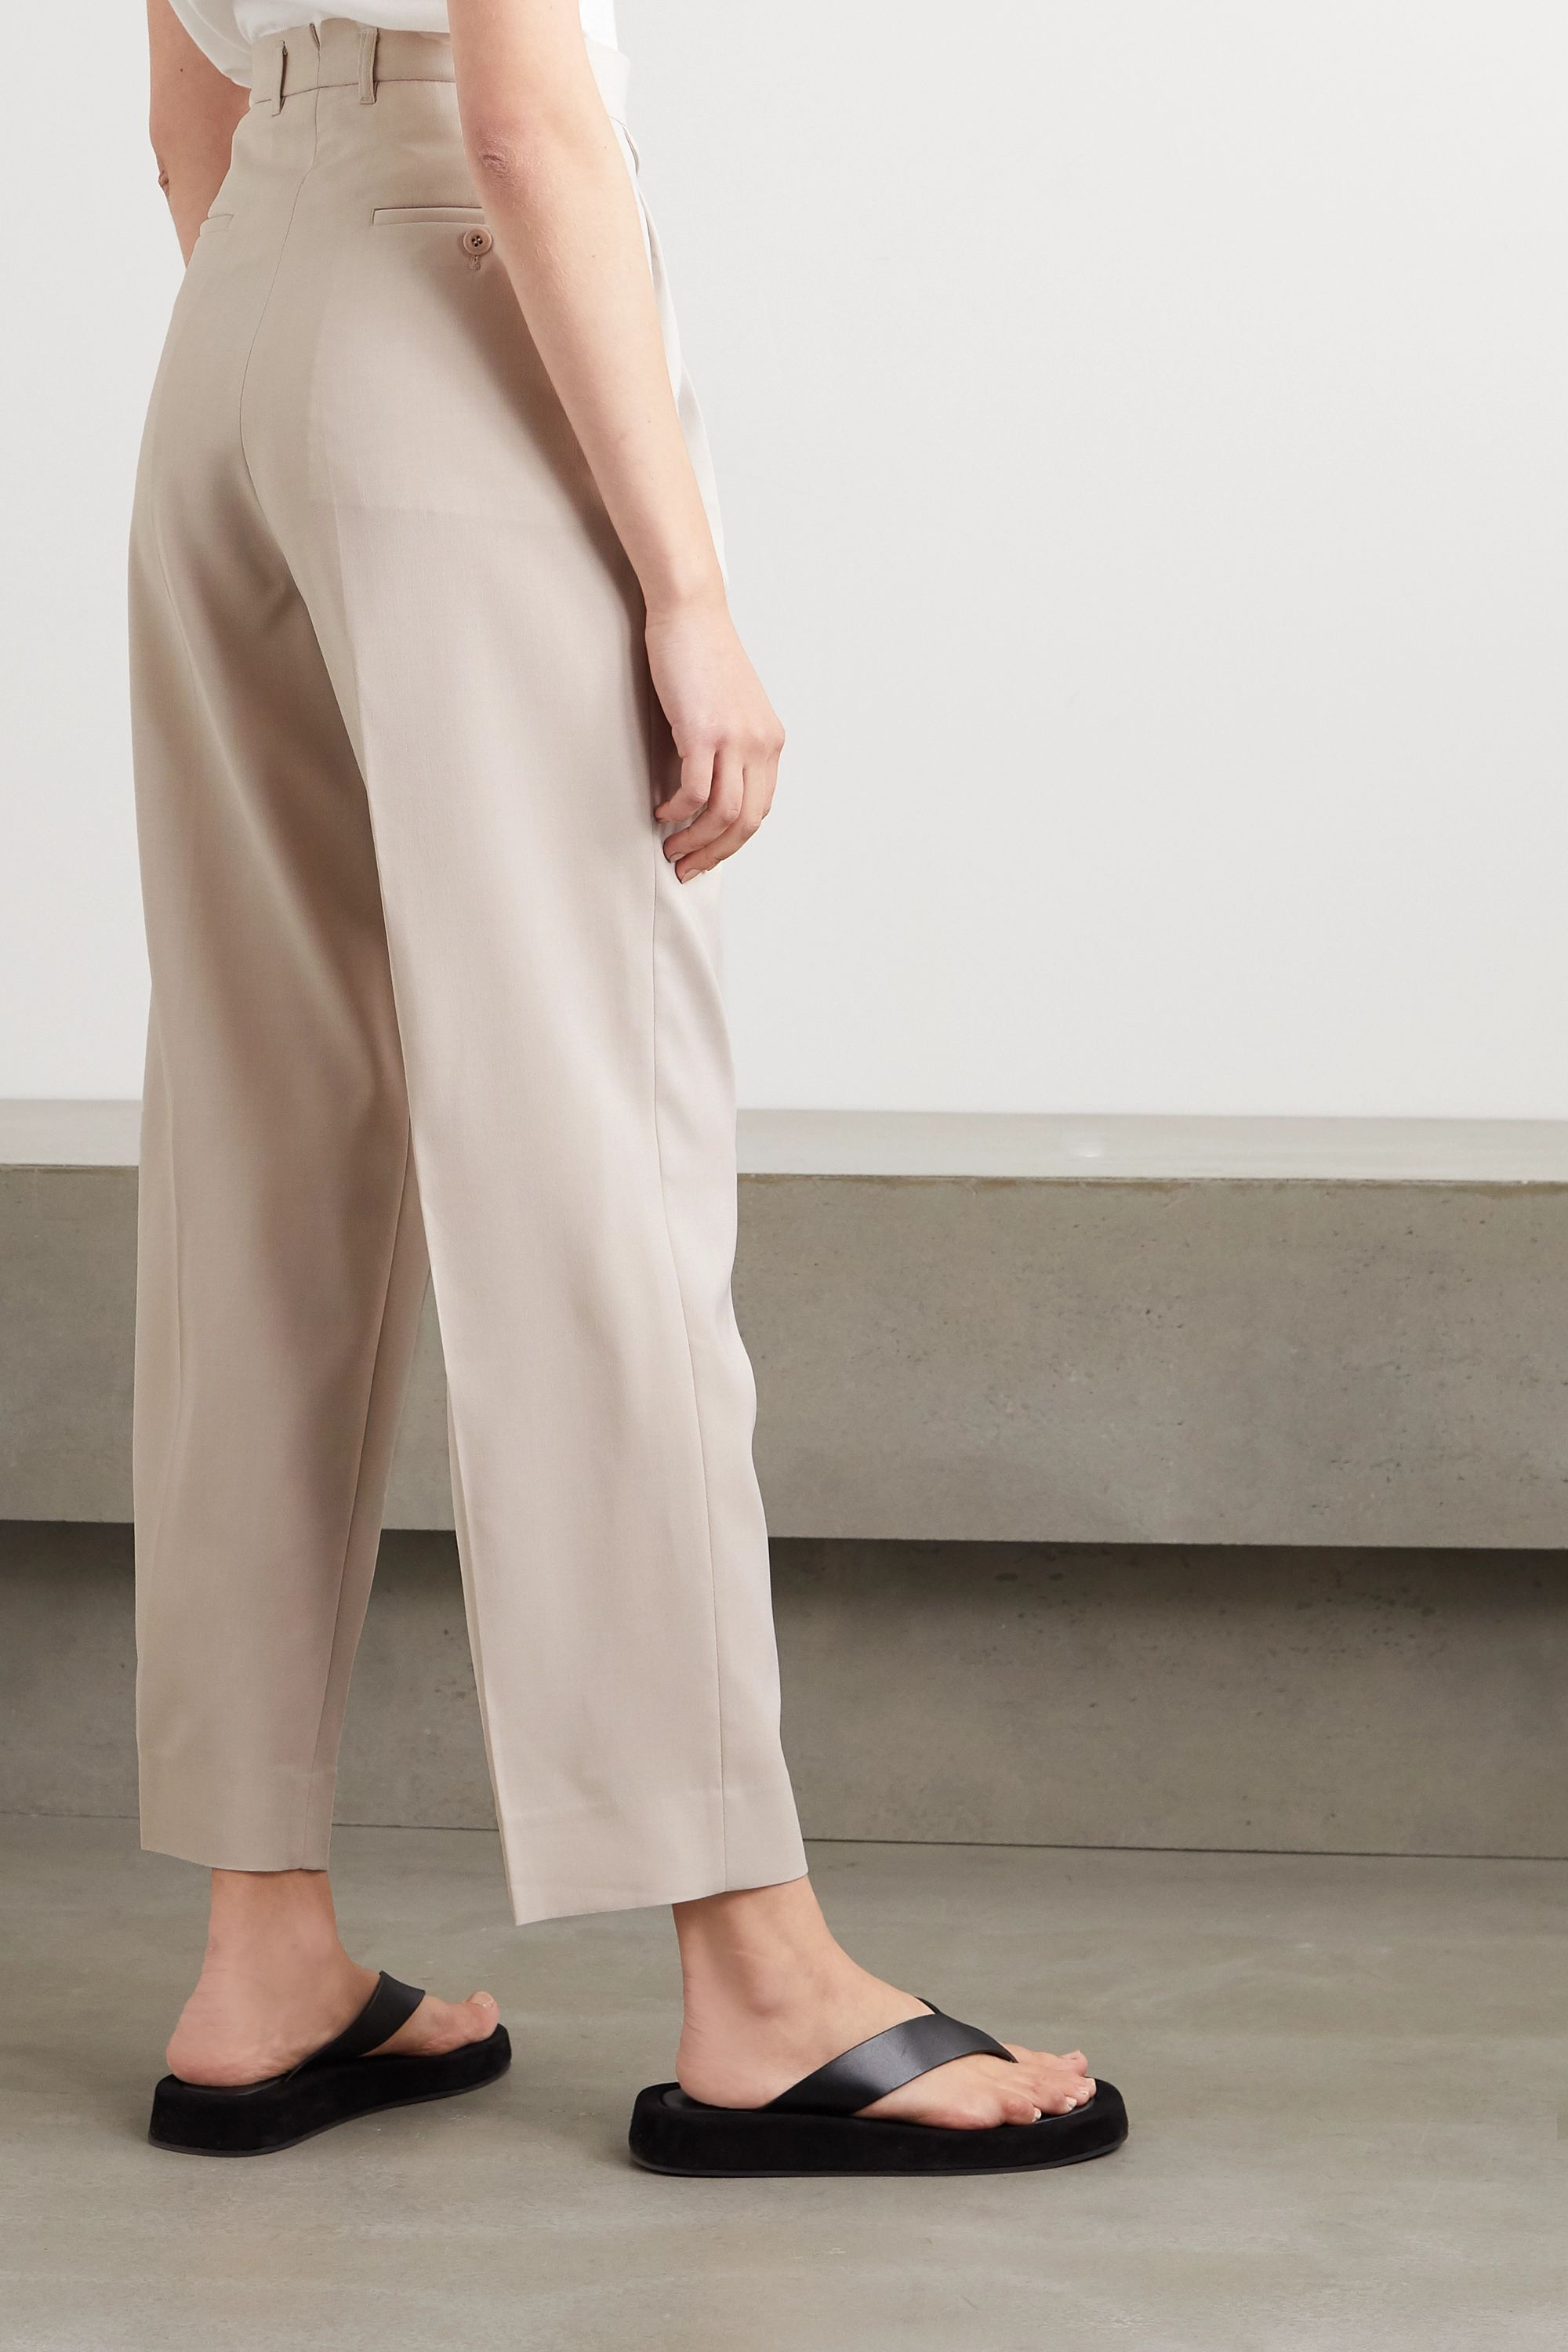 Frankie Shop Pernille woven straight-leg pants